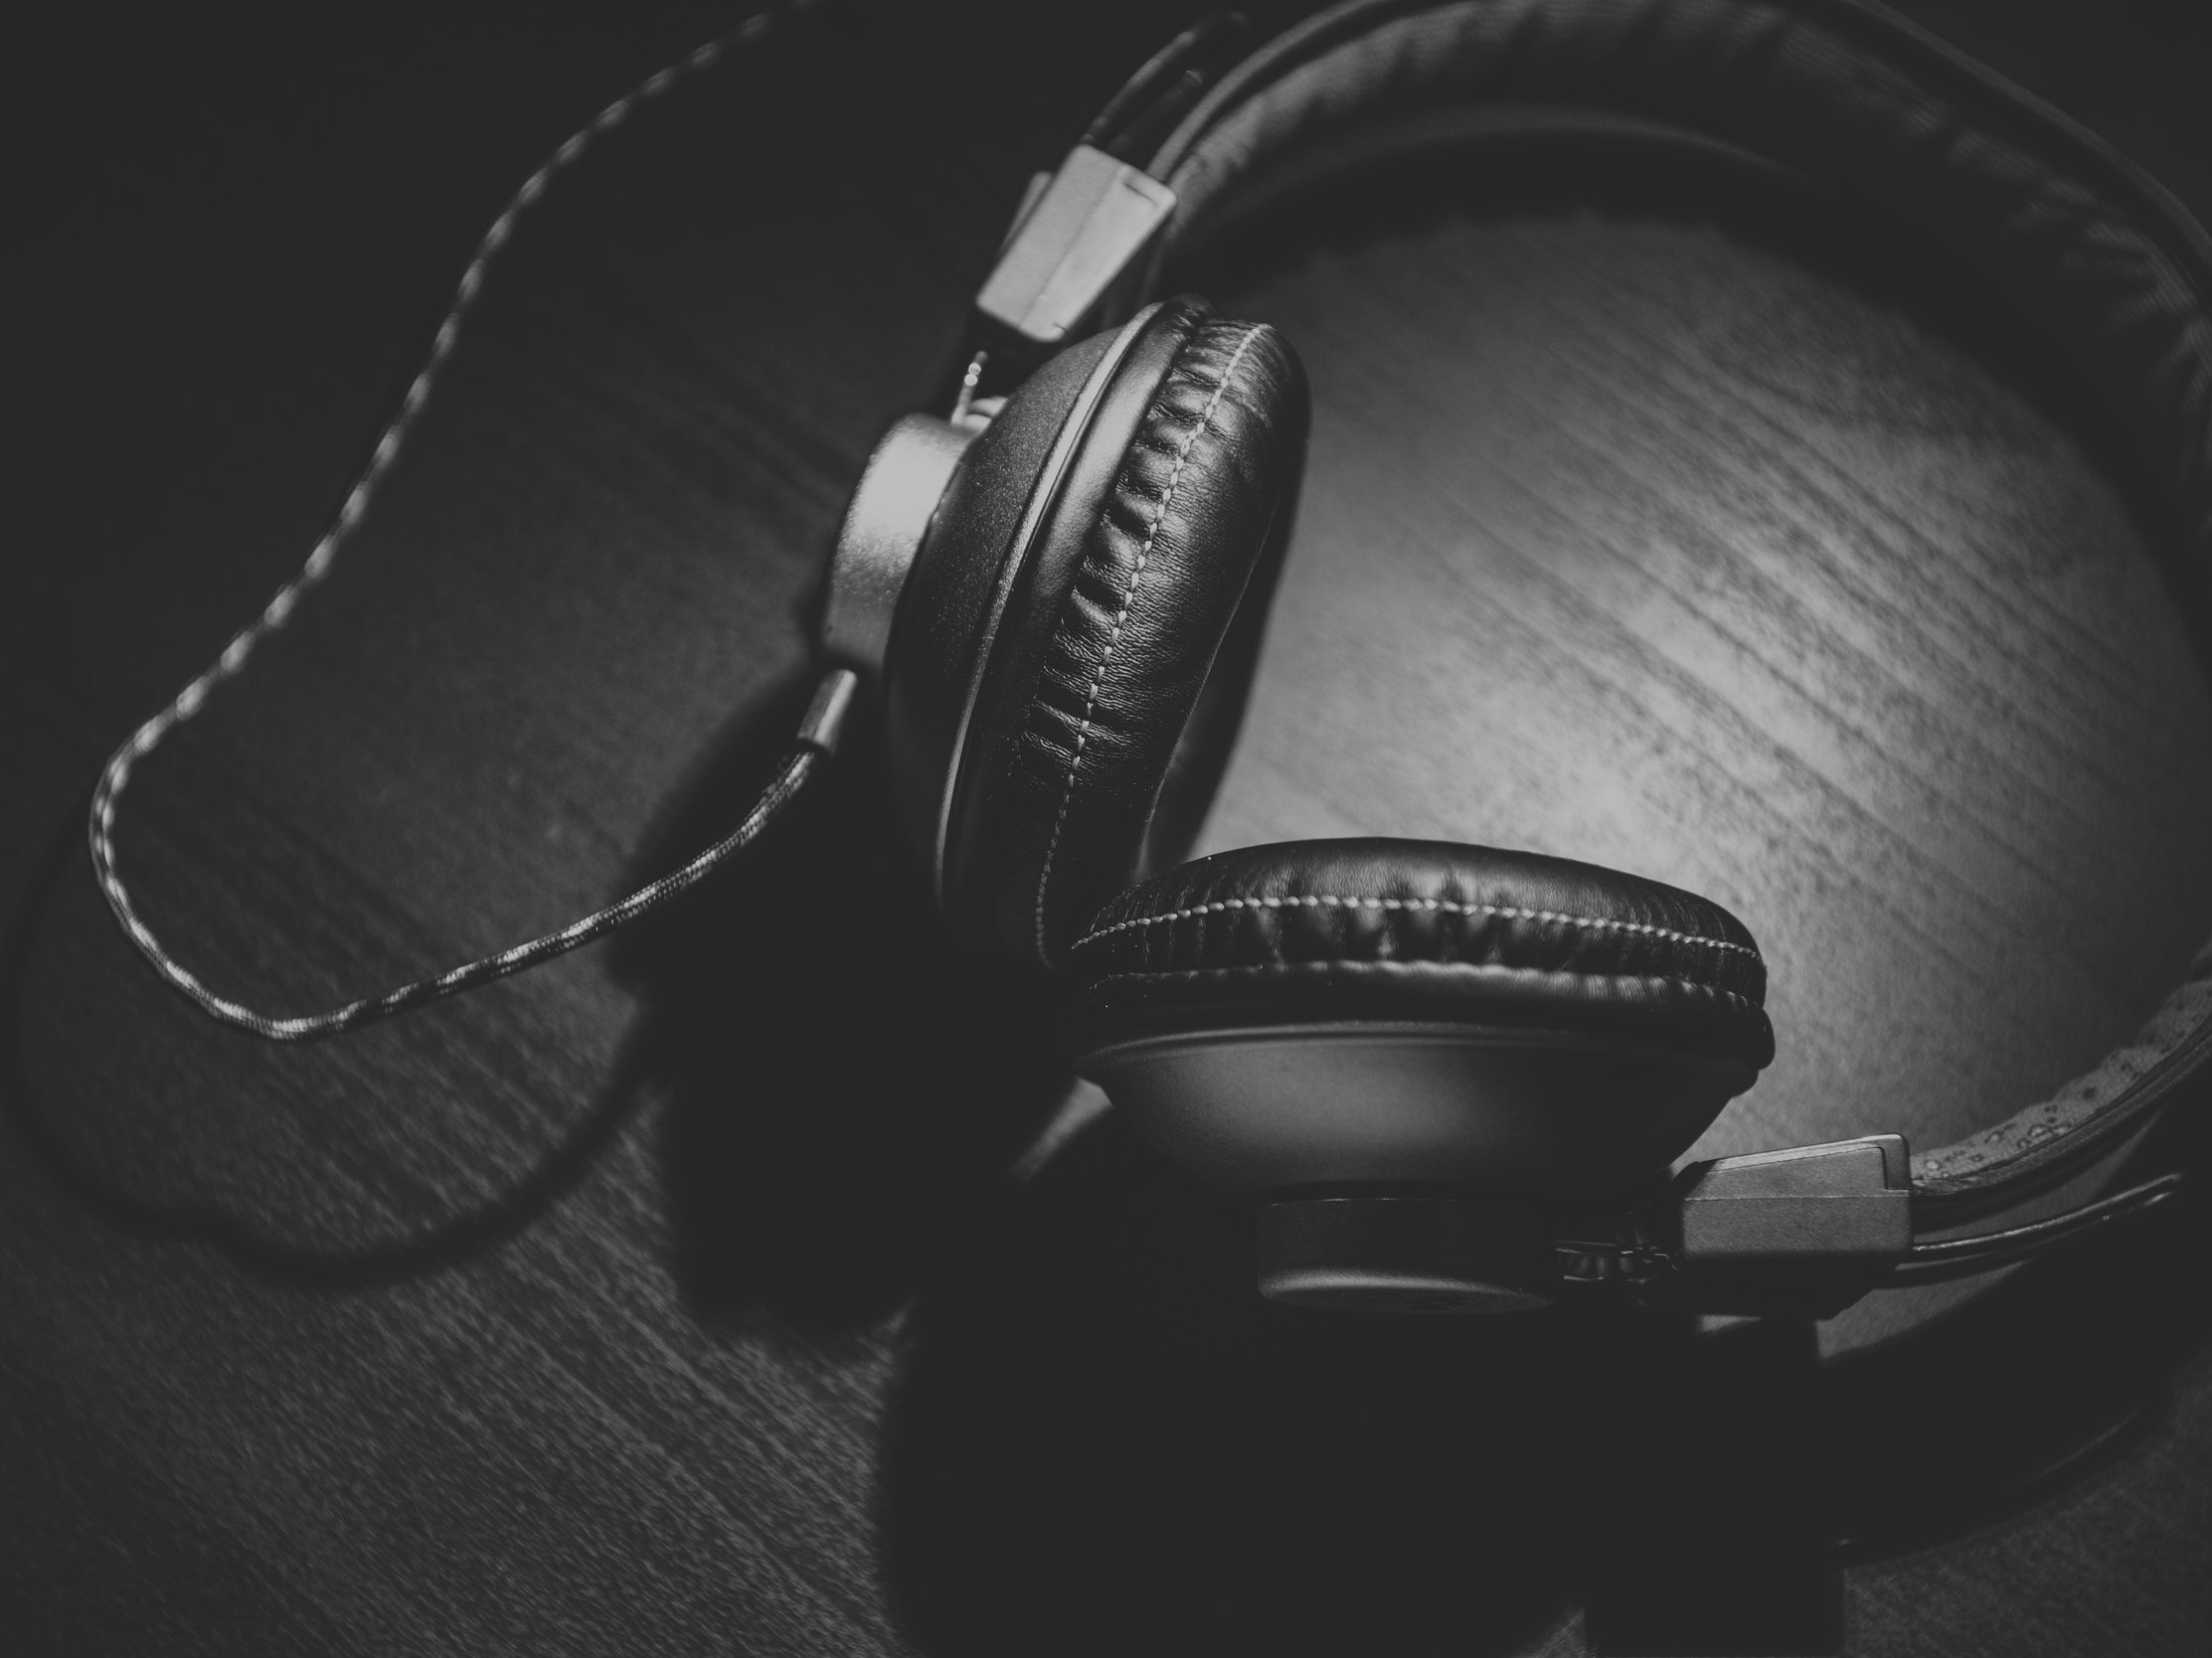 CLICK for Audio forensics - Including Enhancement, Authentication and Transcriptions